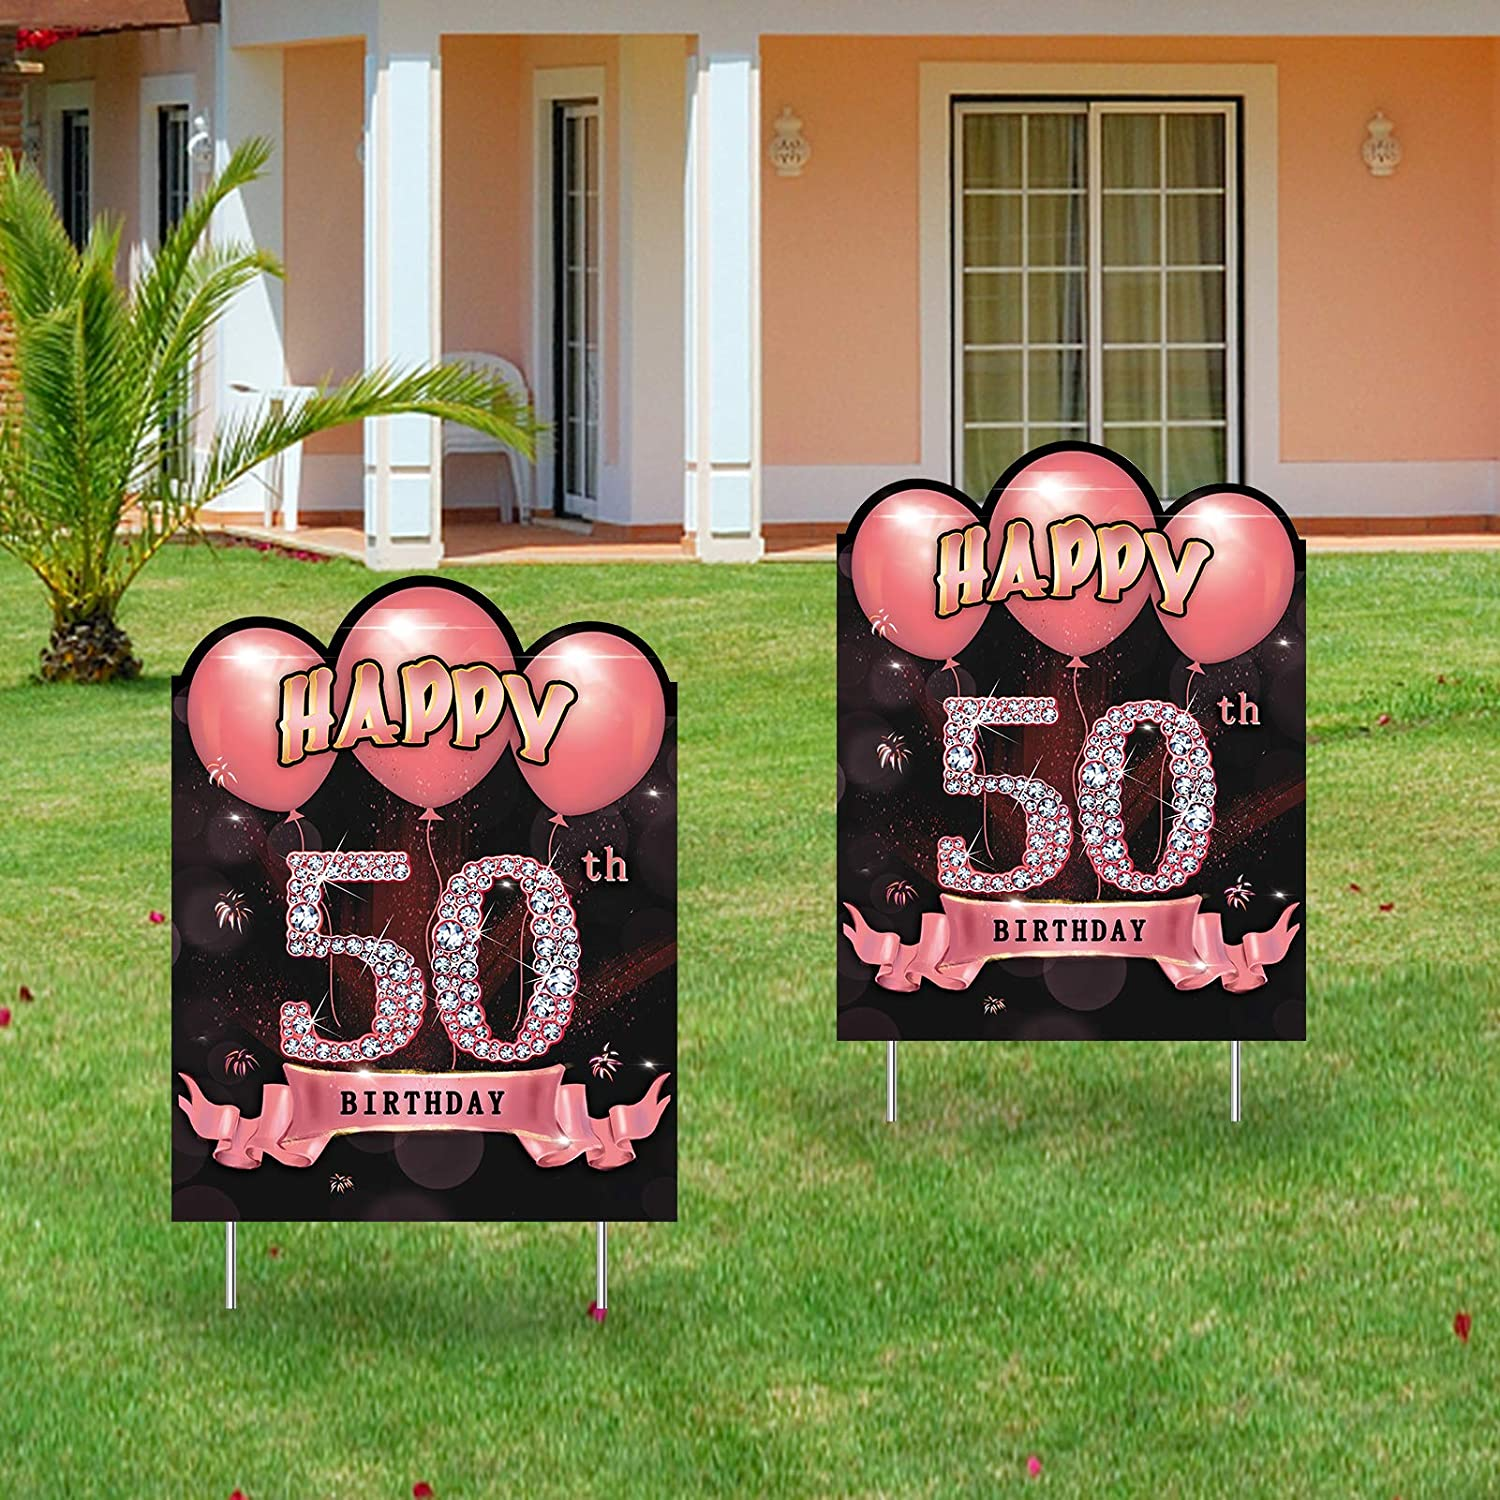 Excelloon 2Pcs 50th Birthday Yard Sign Decorations for Women, Rose Gold 50 Year Old Birthday Party Lawn Signs Supplies, Happy Fifty Birthday Yard Decor for Outdoor